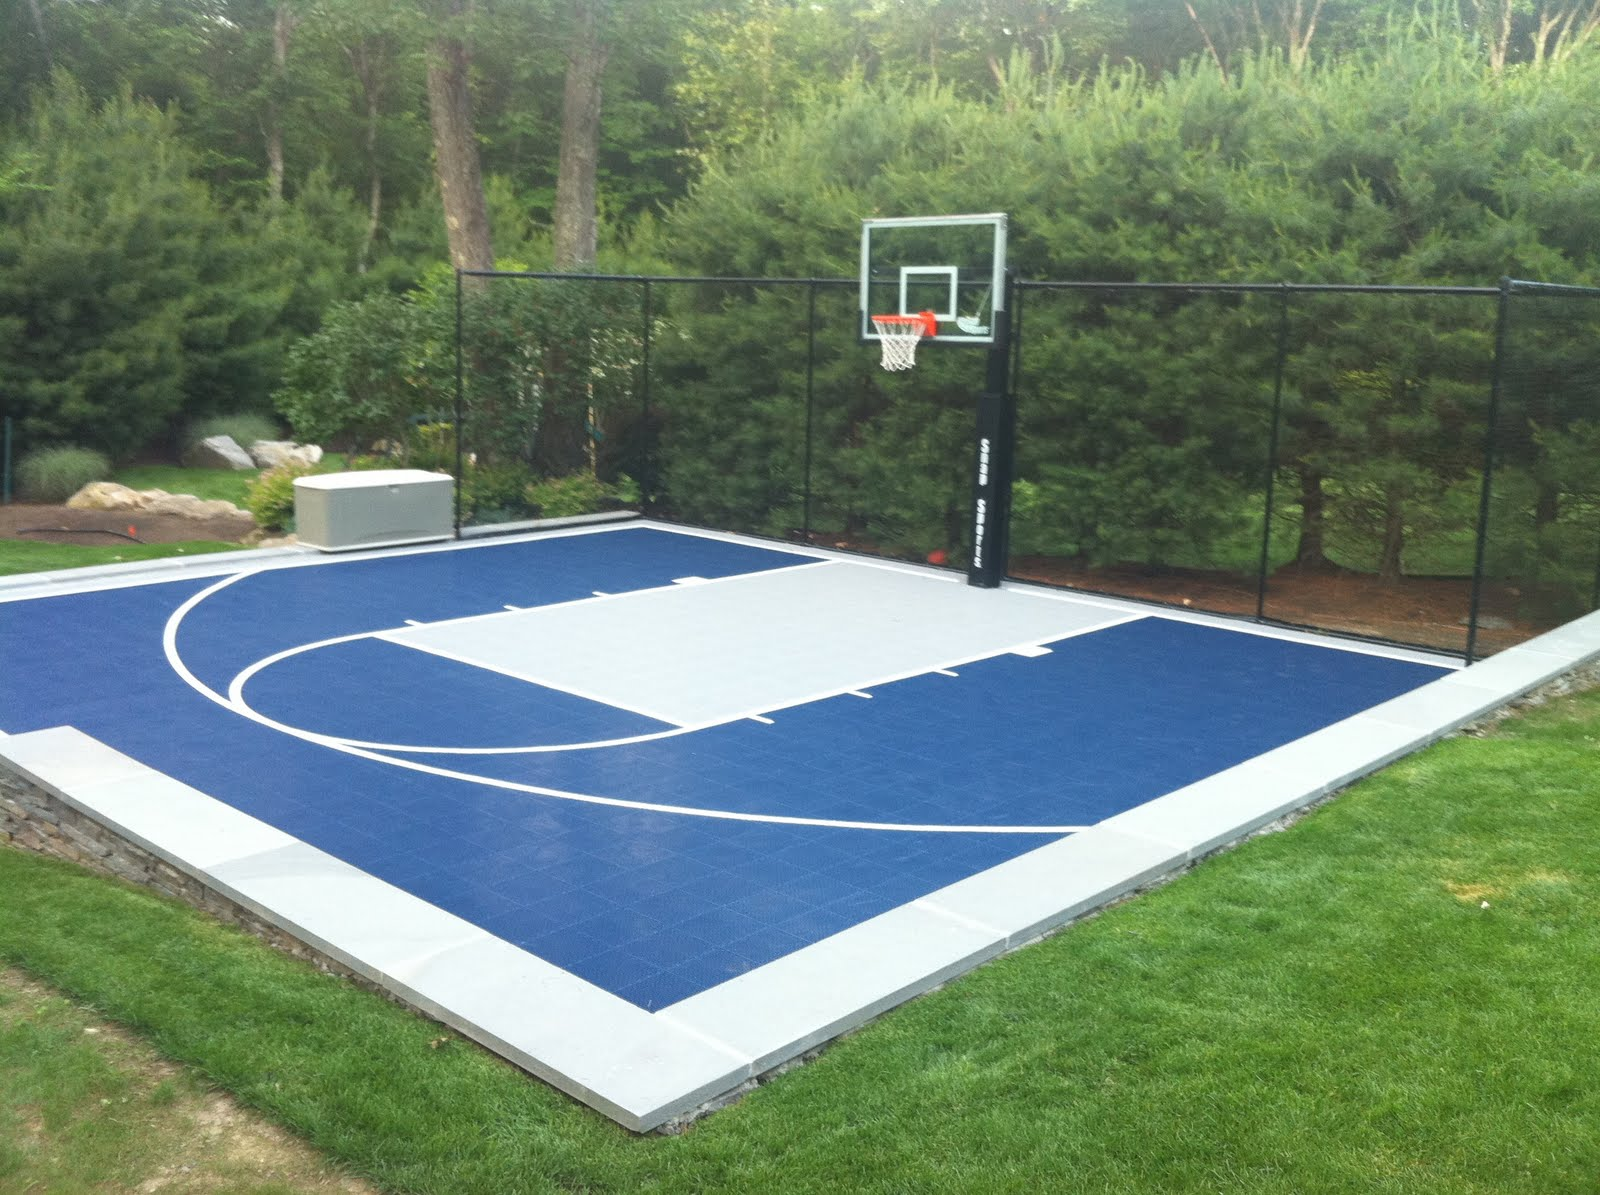 mr dunk 30 x 34 court in east greenwich ri